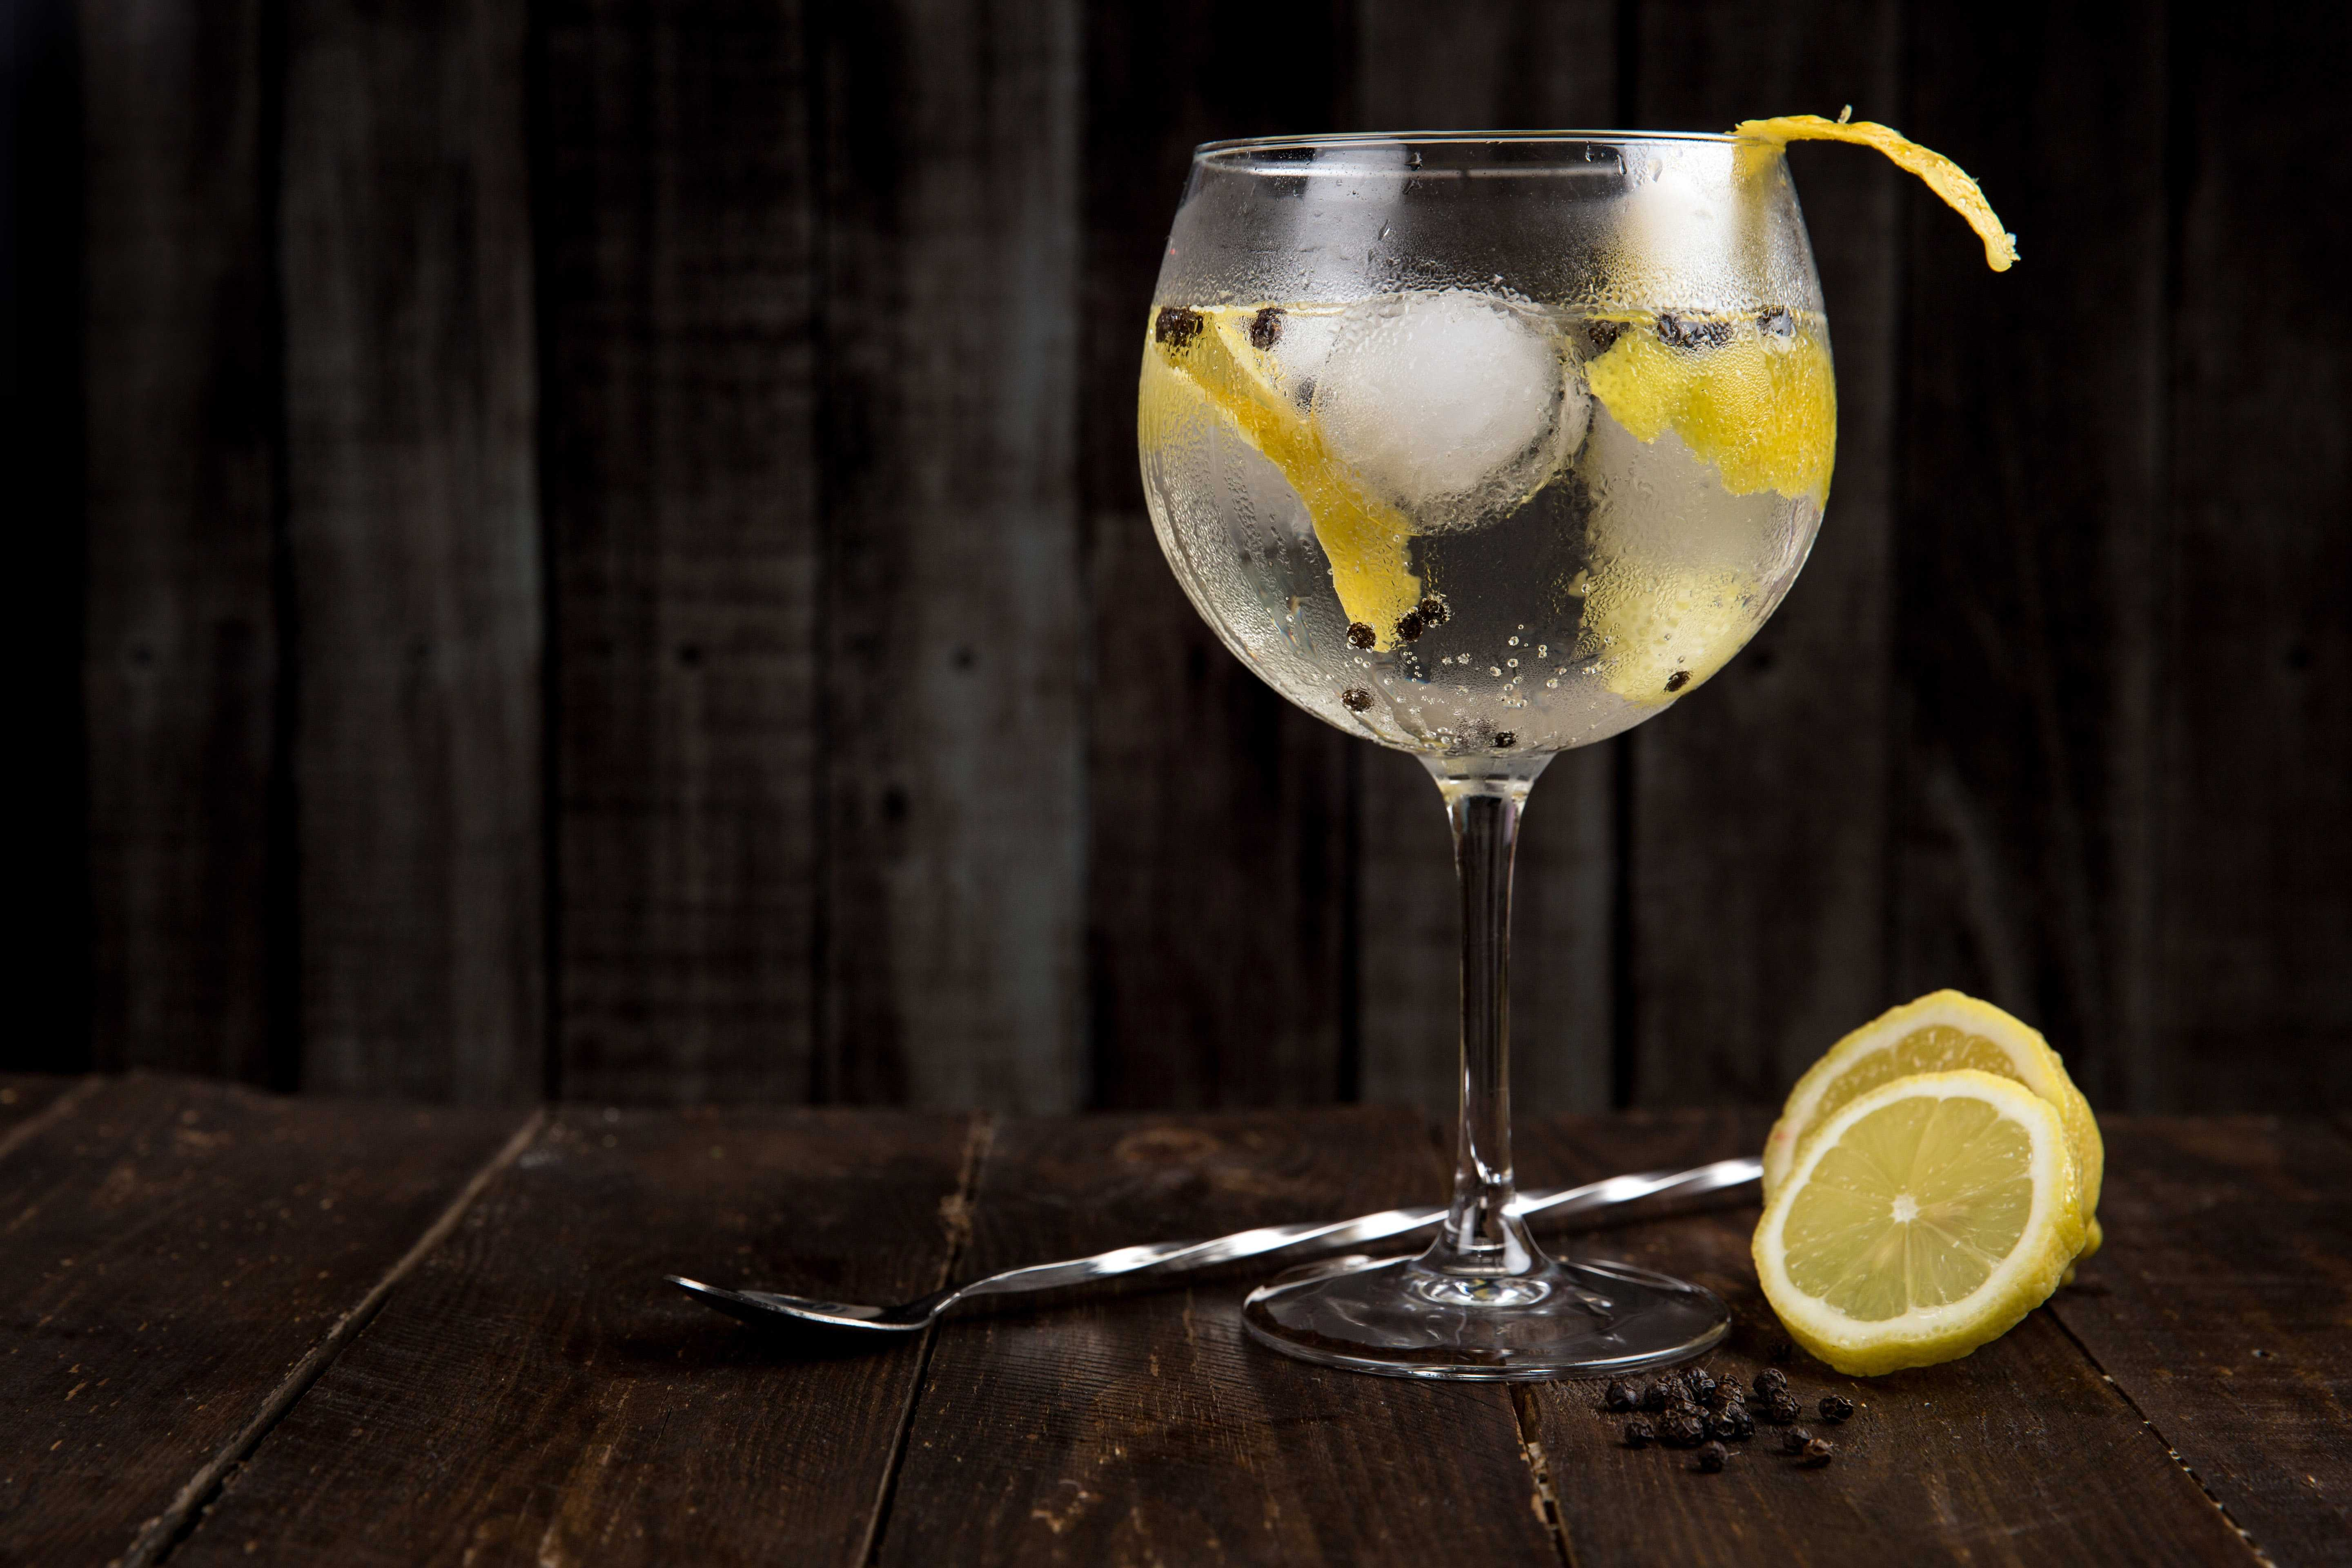 Lifestyle: The gin explosion